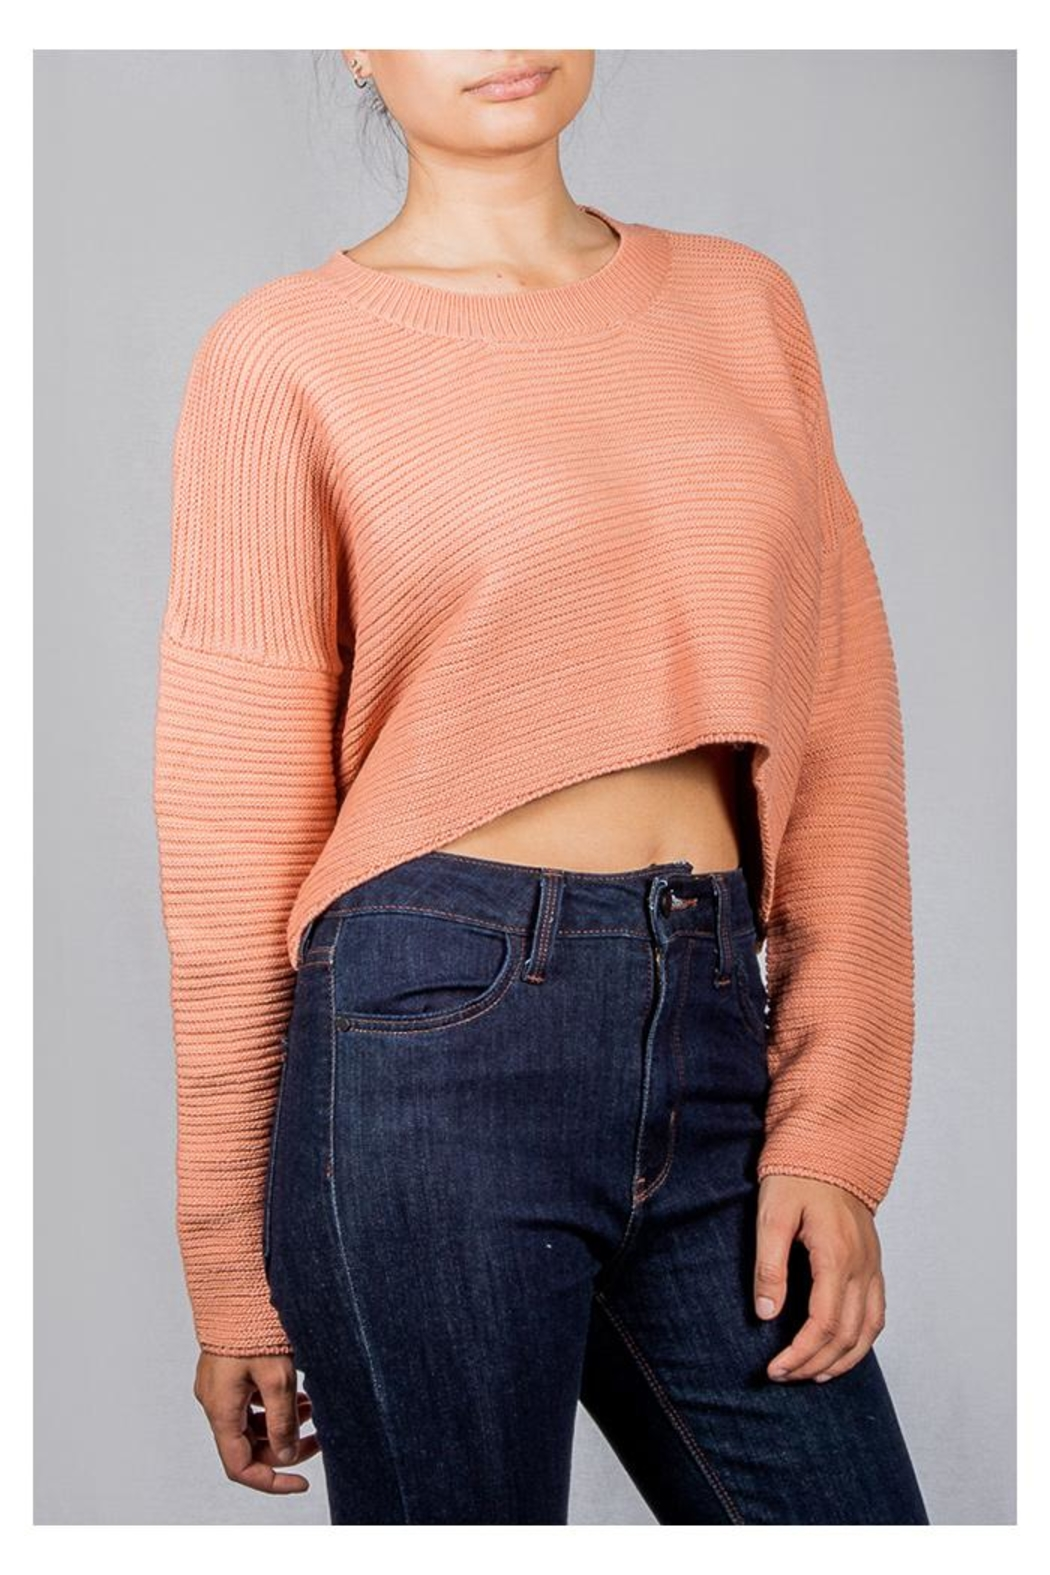 Audrey 3+1 Bubblegum Ribbed Sweater - Side Cropped Image